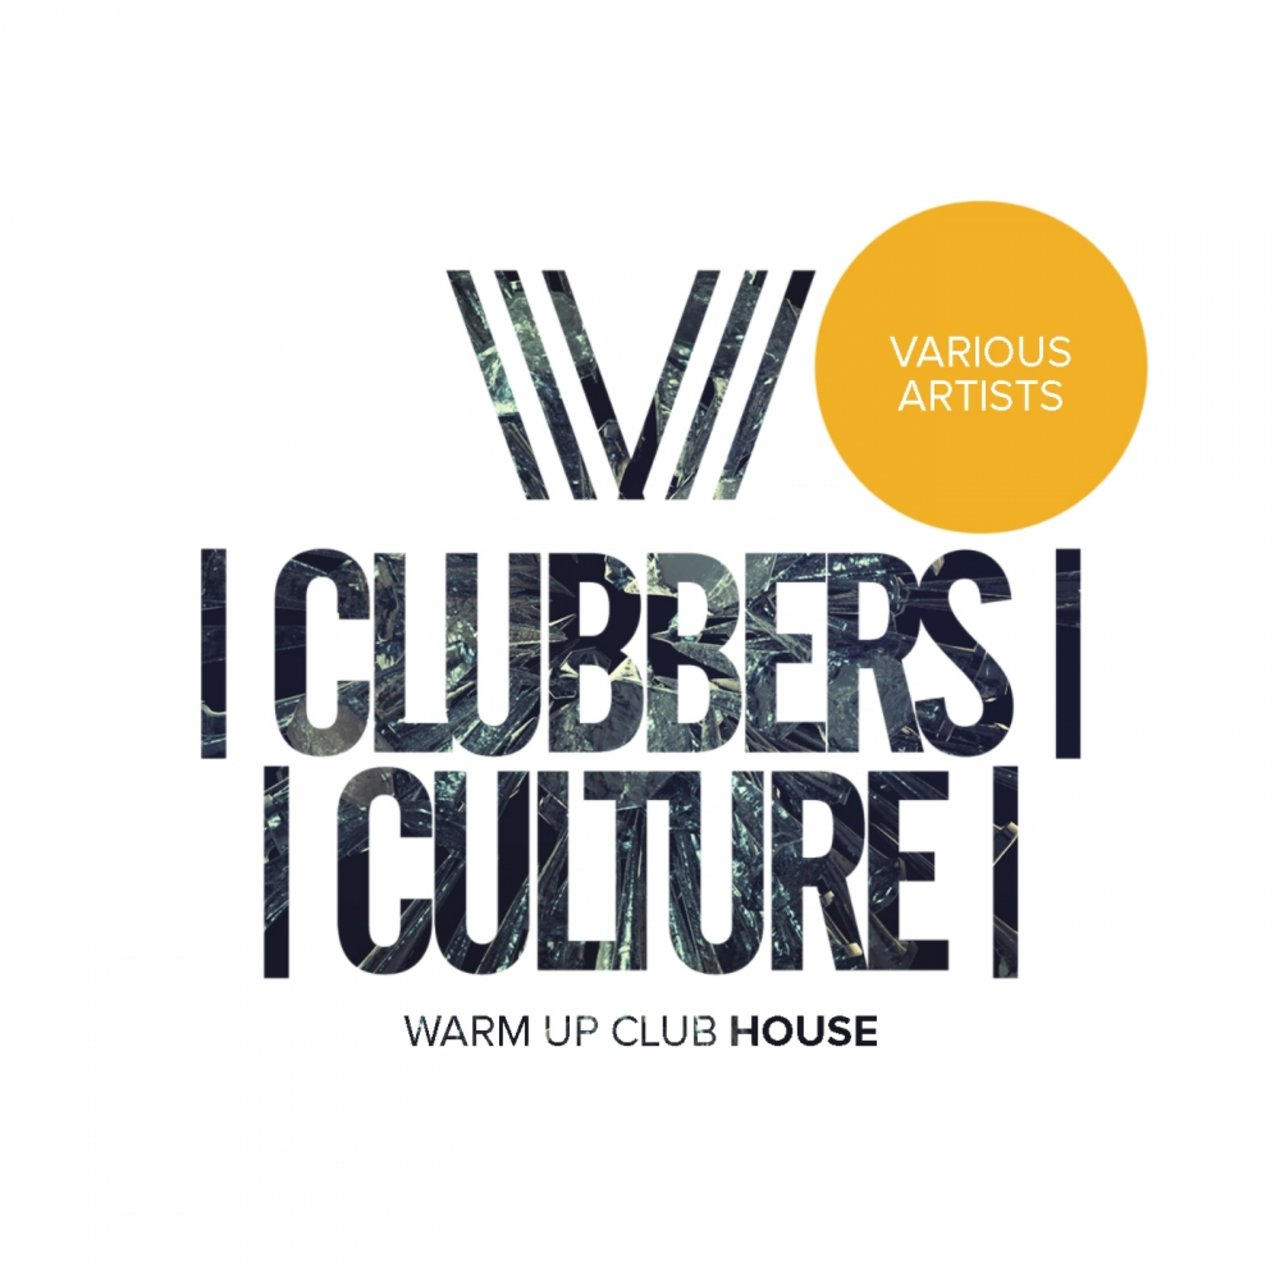 Clubbers Culture: Warm Up Club House